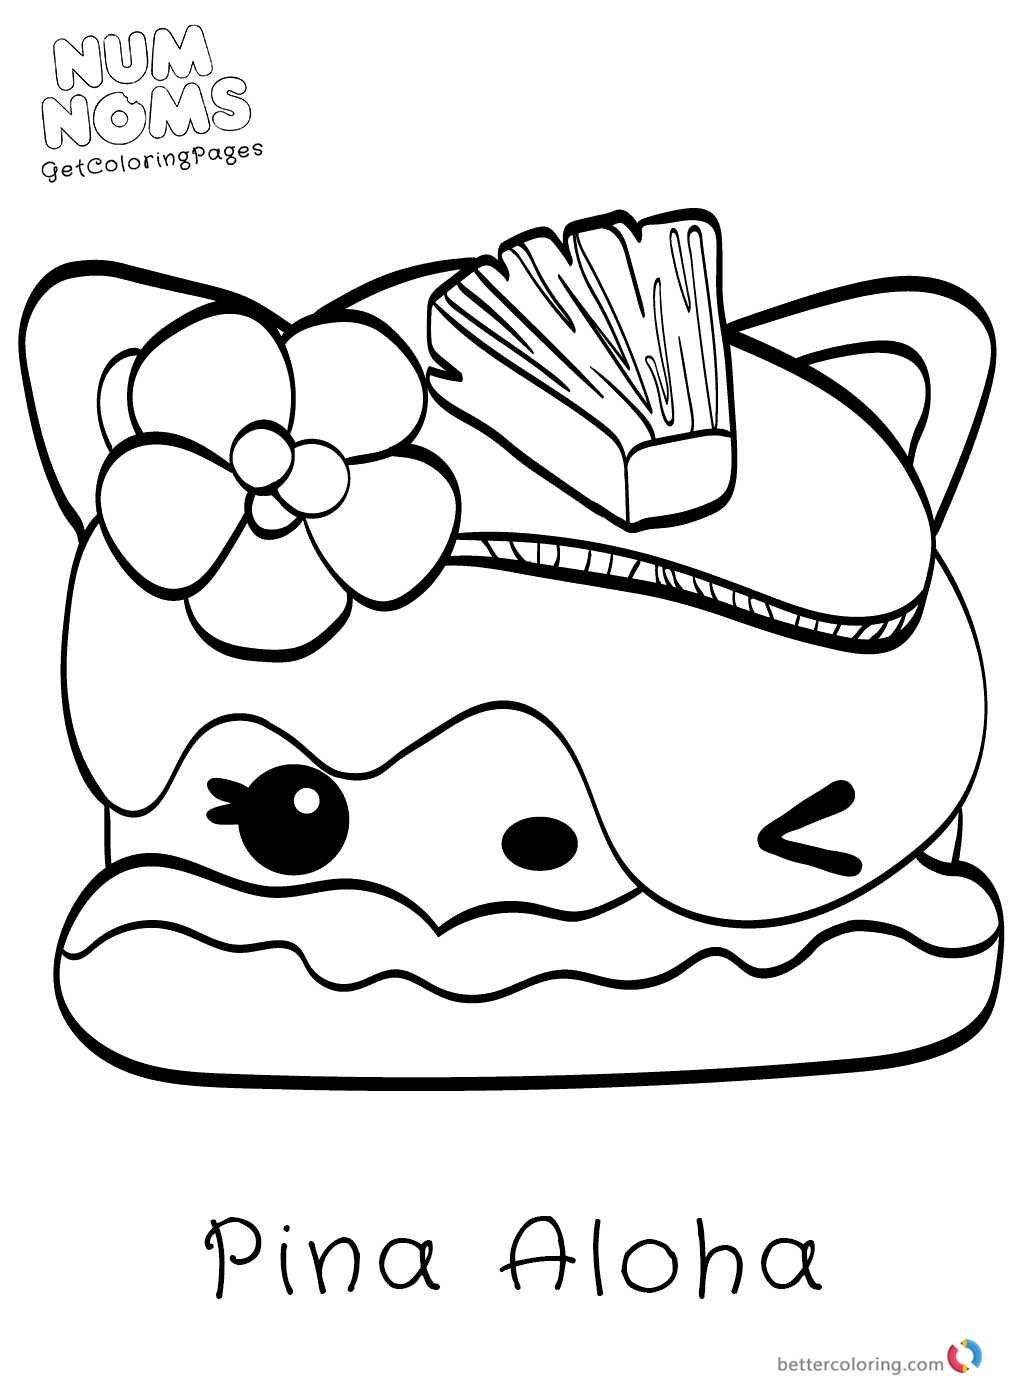 nom nom coloring pages 30 Coloring Pages Num Noms | Coloring Pages | Coloring pages, Cute  nom nom coloring pages